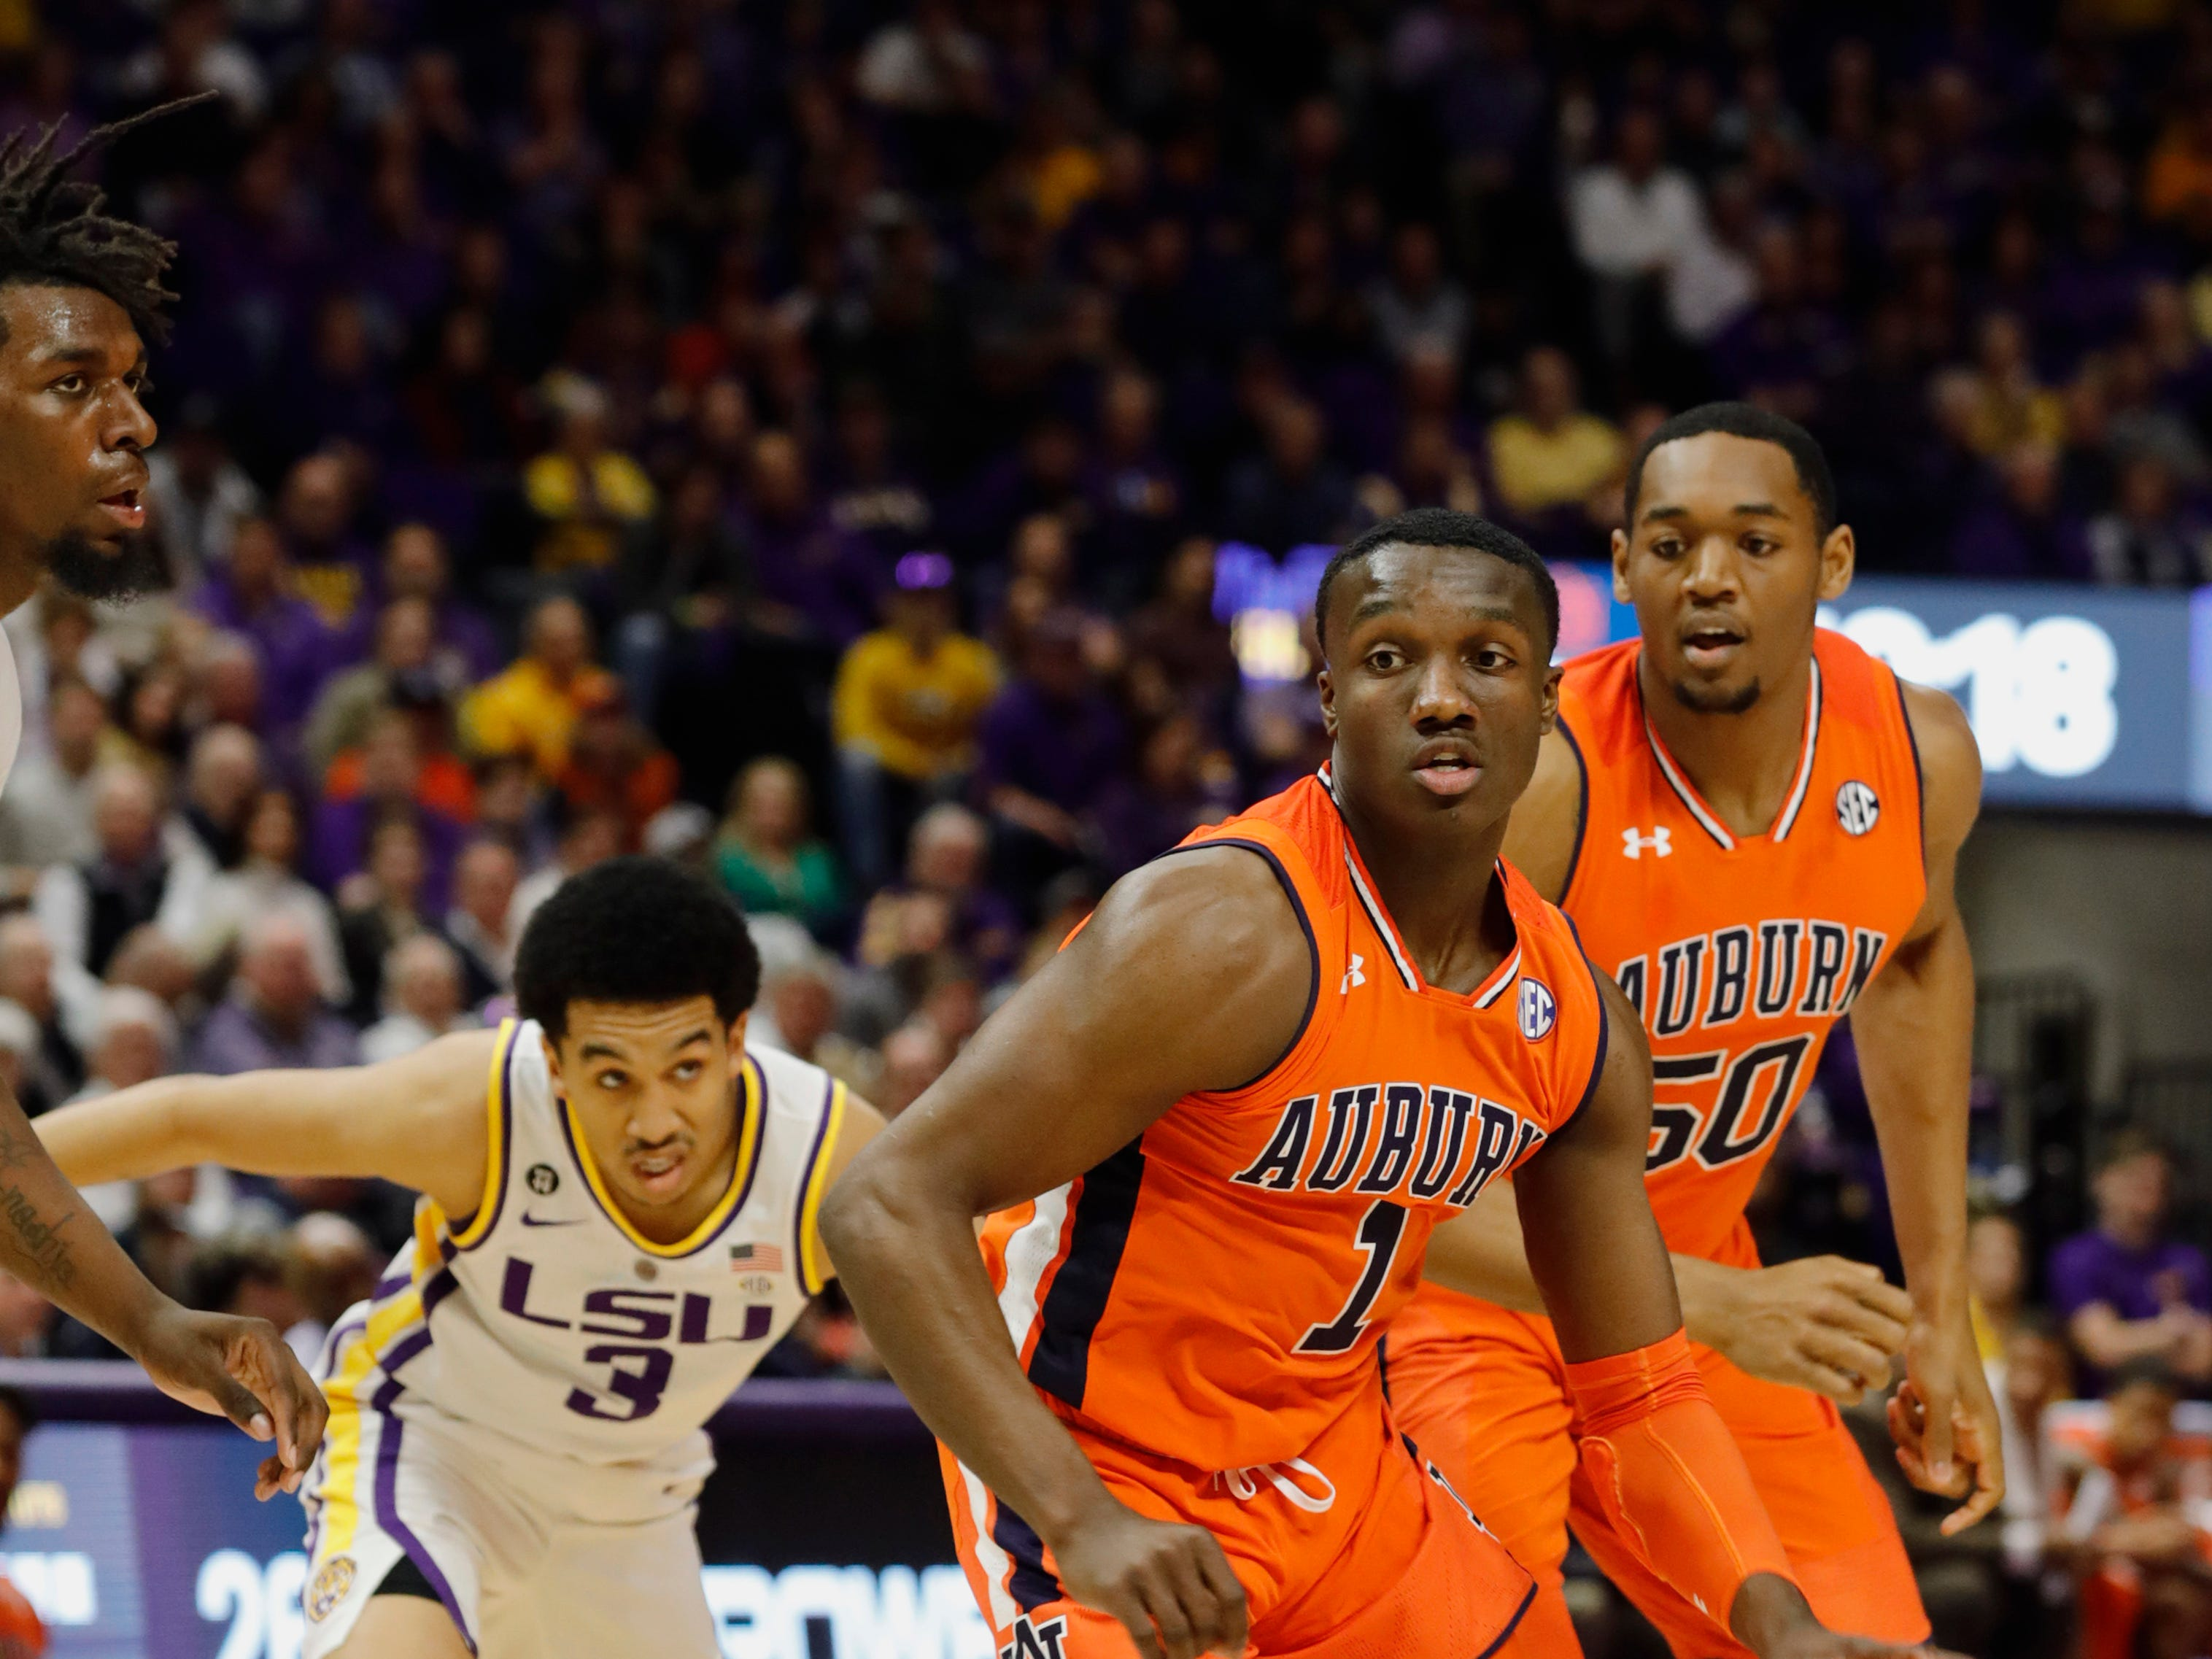 Feb 9, 2019; Baton Rouge, LA, USA; Auburn Tigers guard Jared Harper (1) dribbles against LSU Tigers guard Tremont Waters (3) in the first half at Maravich Assembly Center. Mandatory Credit: Stephen Lew-USA TODAY Sports